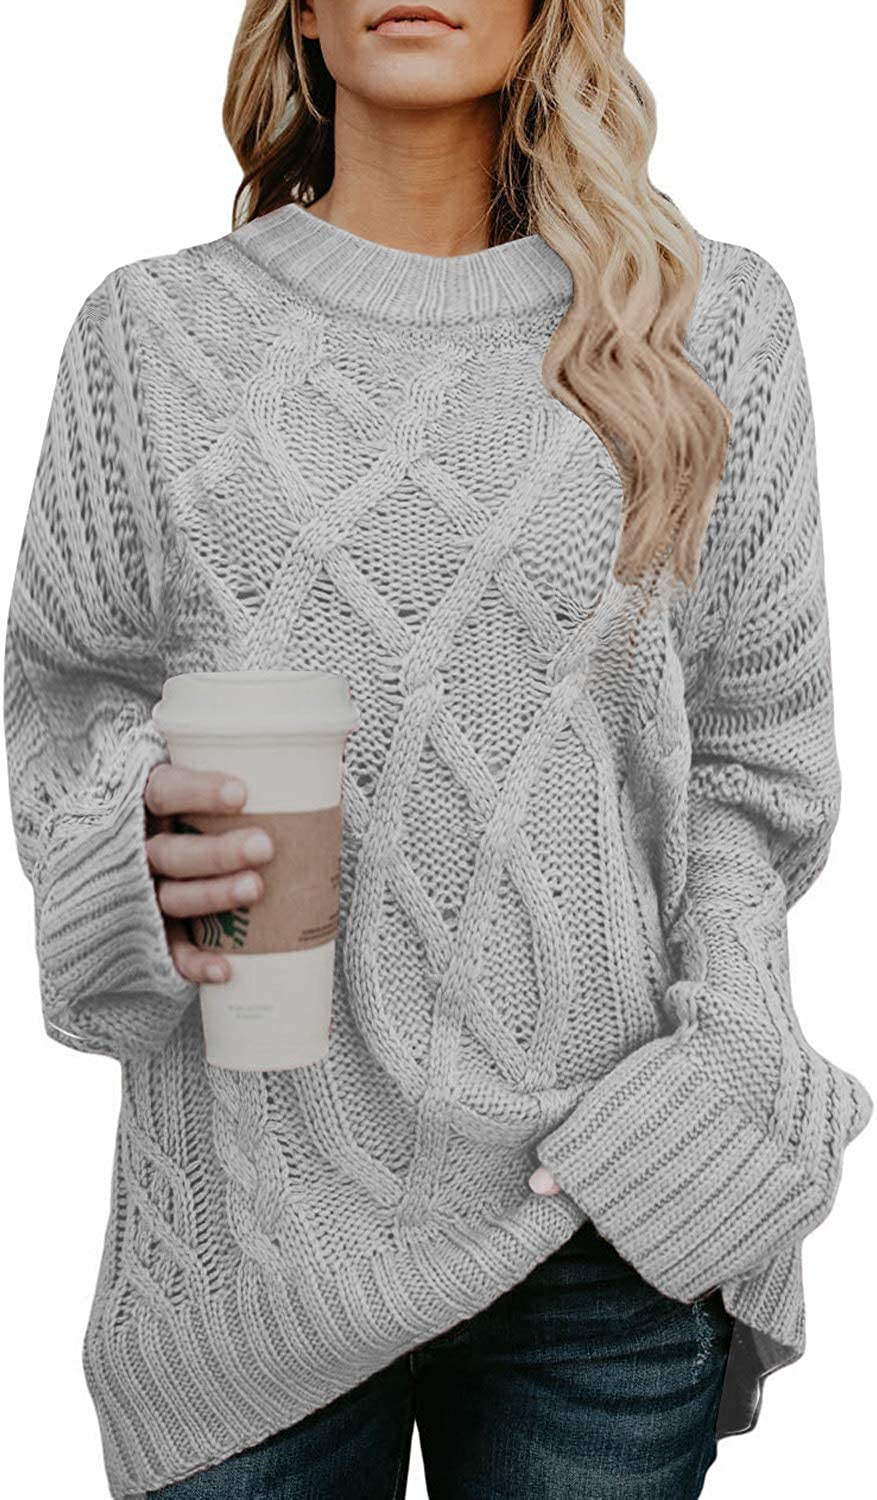 ROSKIKI Women Sexy Off The Shoulder Cable Knit Oversized Pullover Sweaters